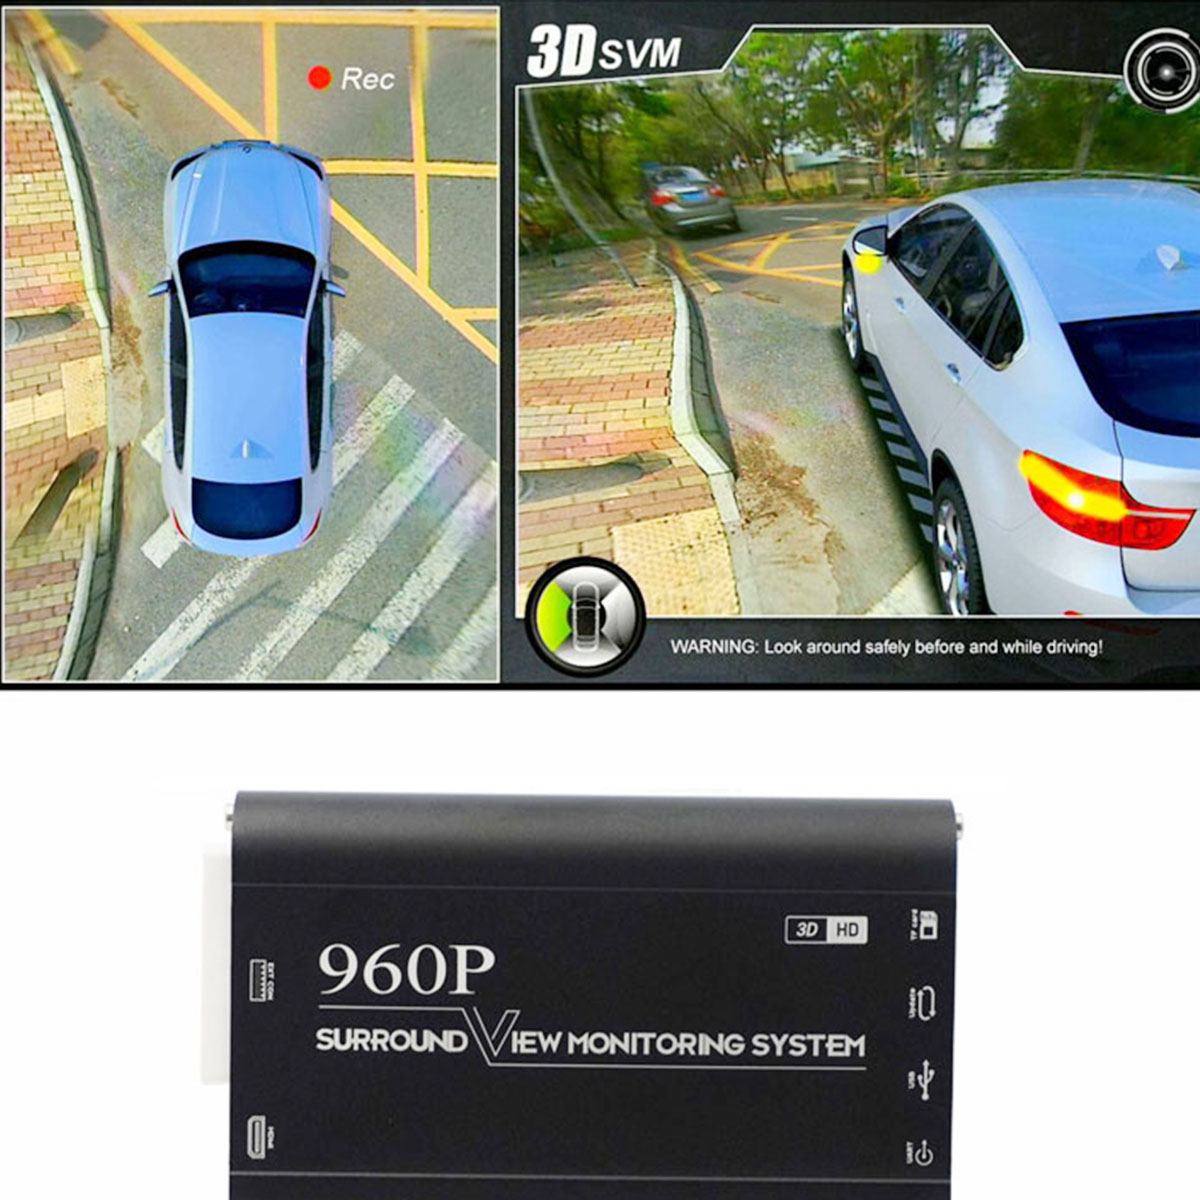 Newest 3D <font><b>Car</b></font> Surround View Monitoring System 960P <font><b>DVR</b></font> Bird View System 4 <font><b>DVR</b></font> Cameras HD 960P Recorder Parking Monitoring image